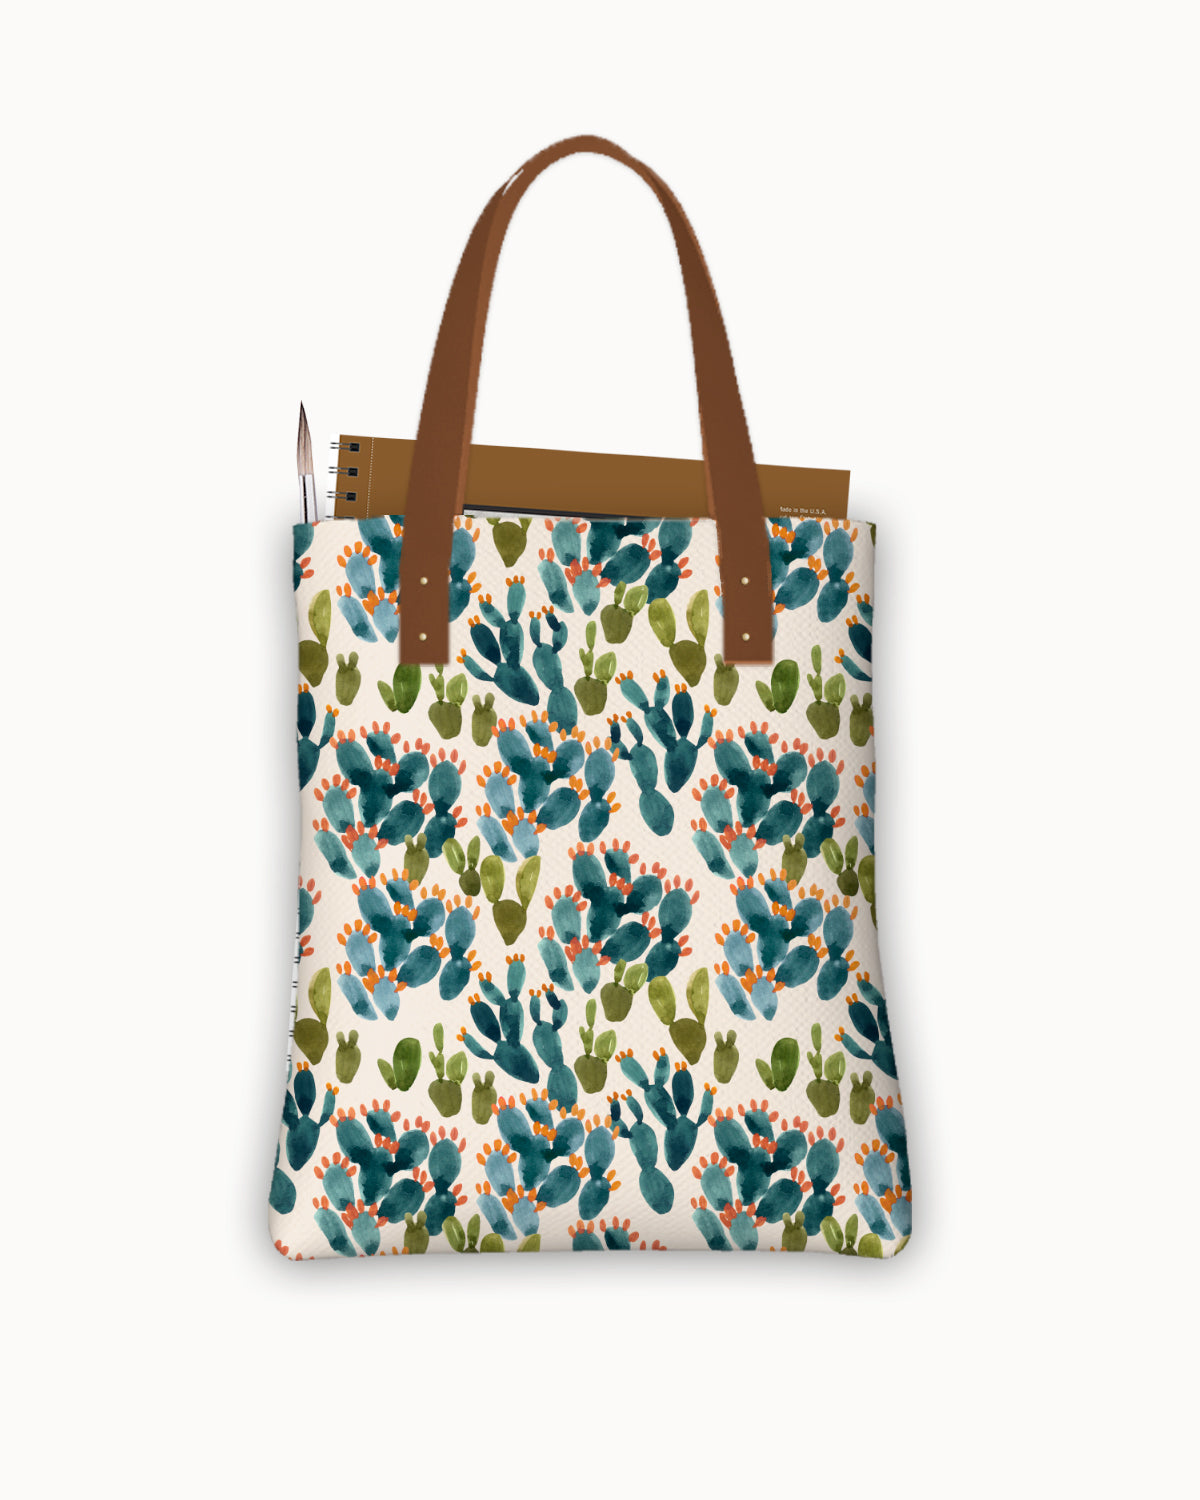 Nopal Cactus Field Urban Tote Bag